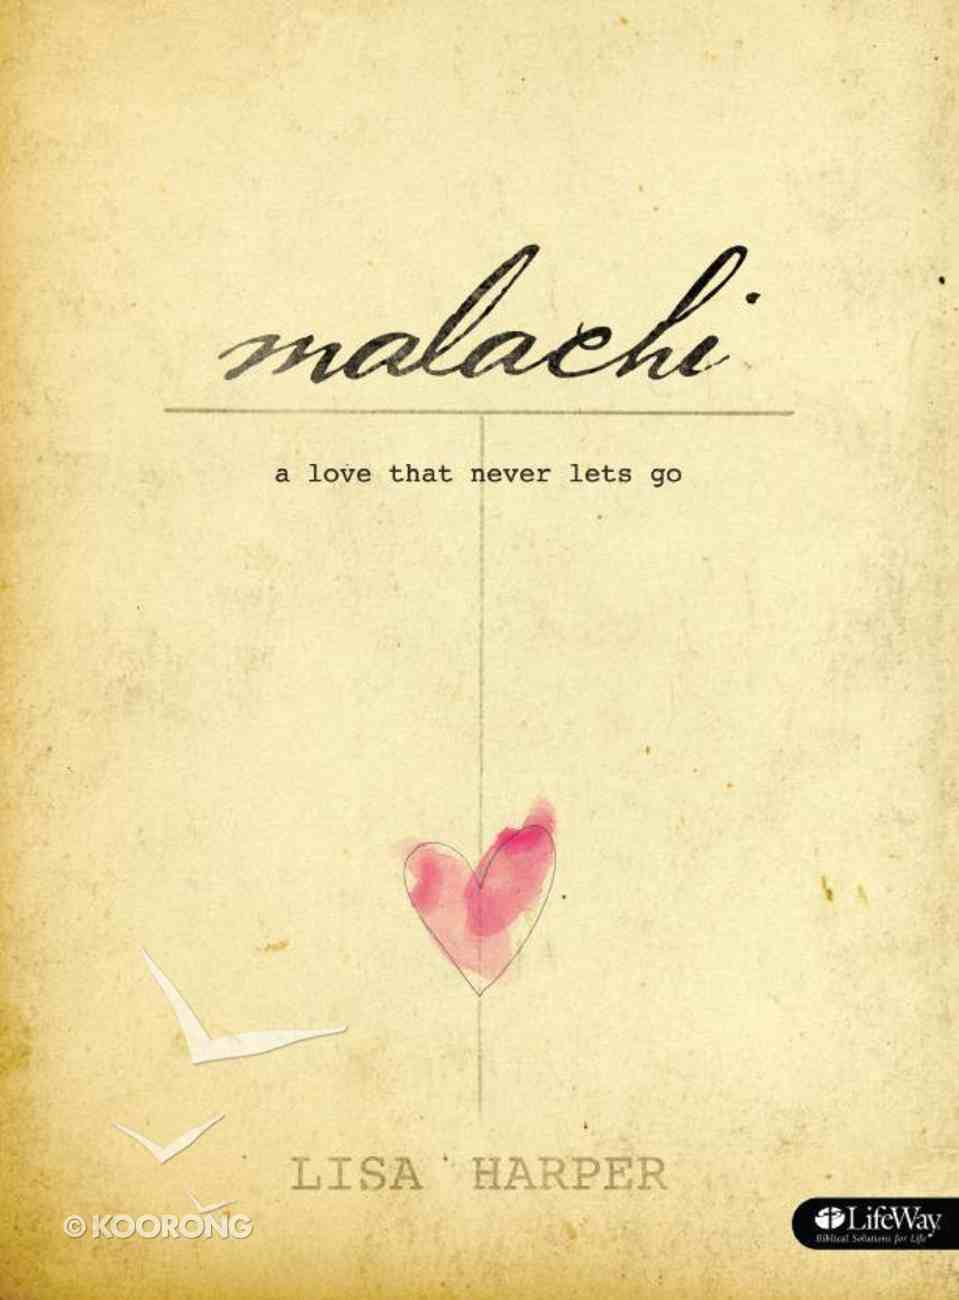 Malachi (2 Dvds): A Love That Never Lets Go (Dvd Only Set) DVD